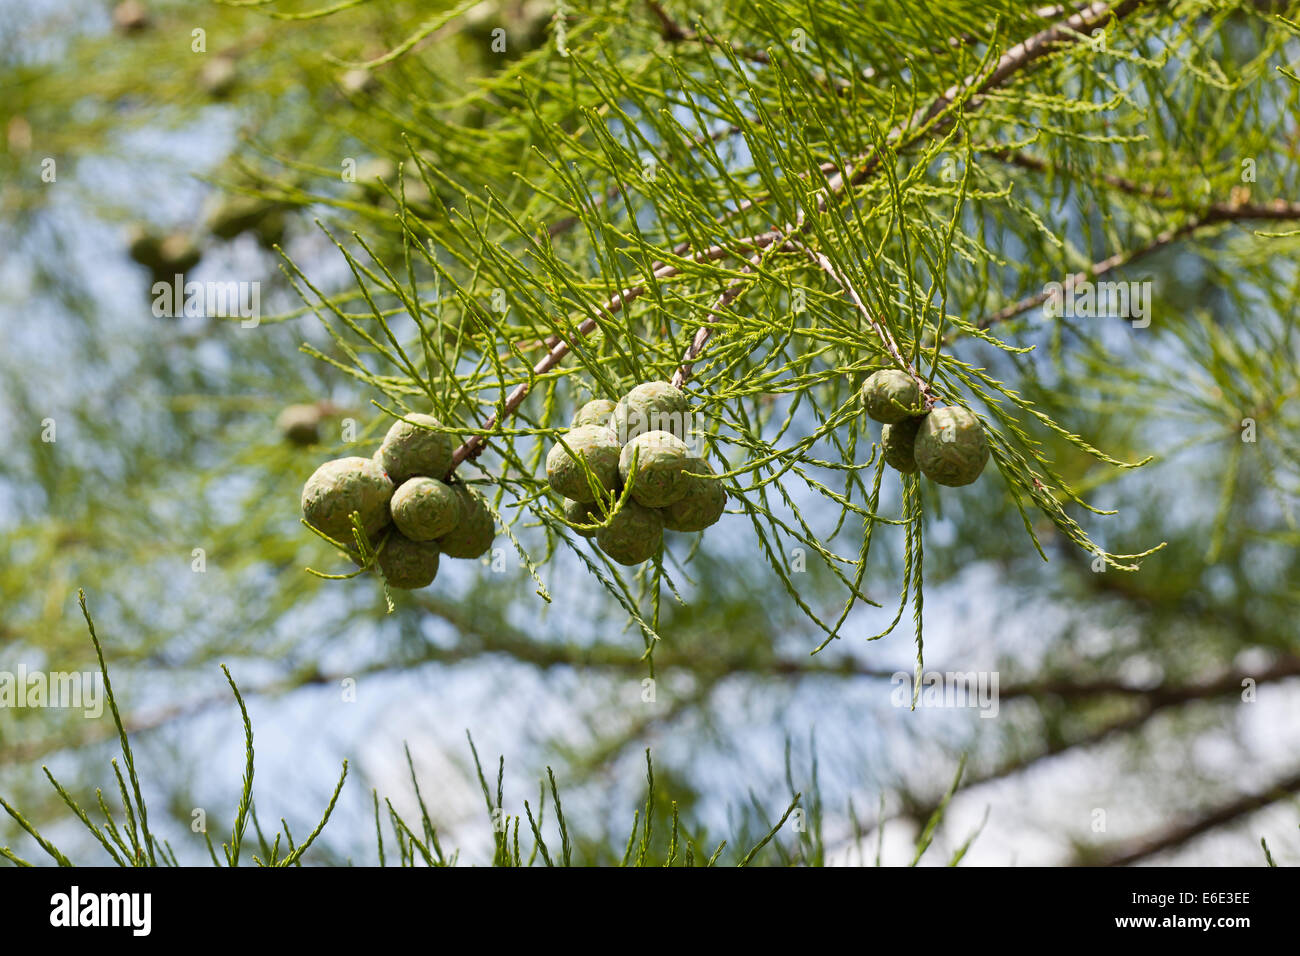 Pond-cypress cones and leaves (Taxodium ascendens) - Stock Image